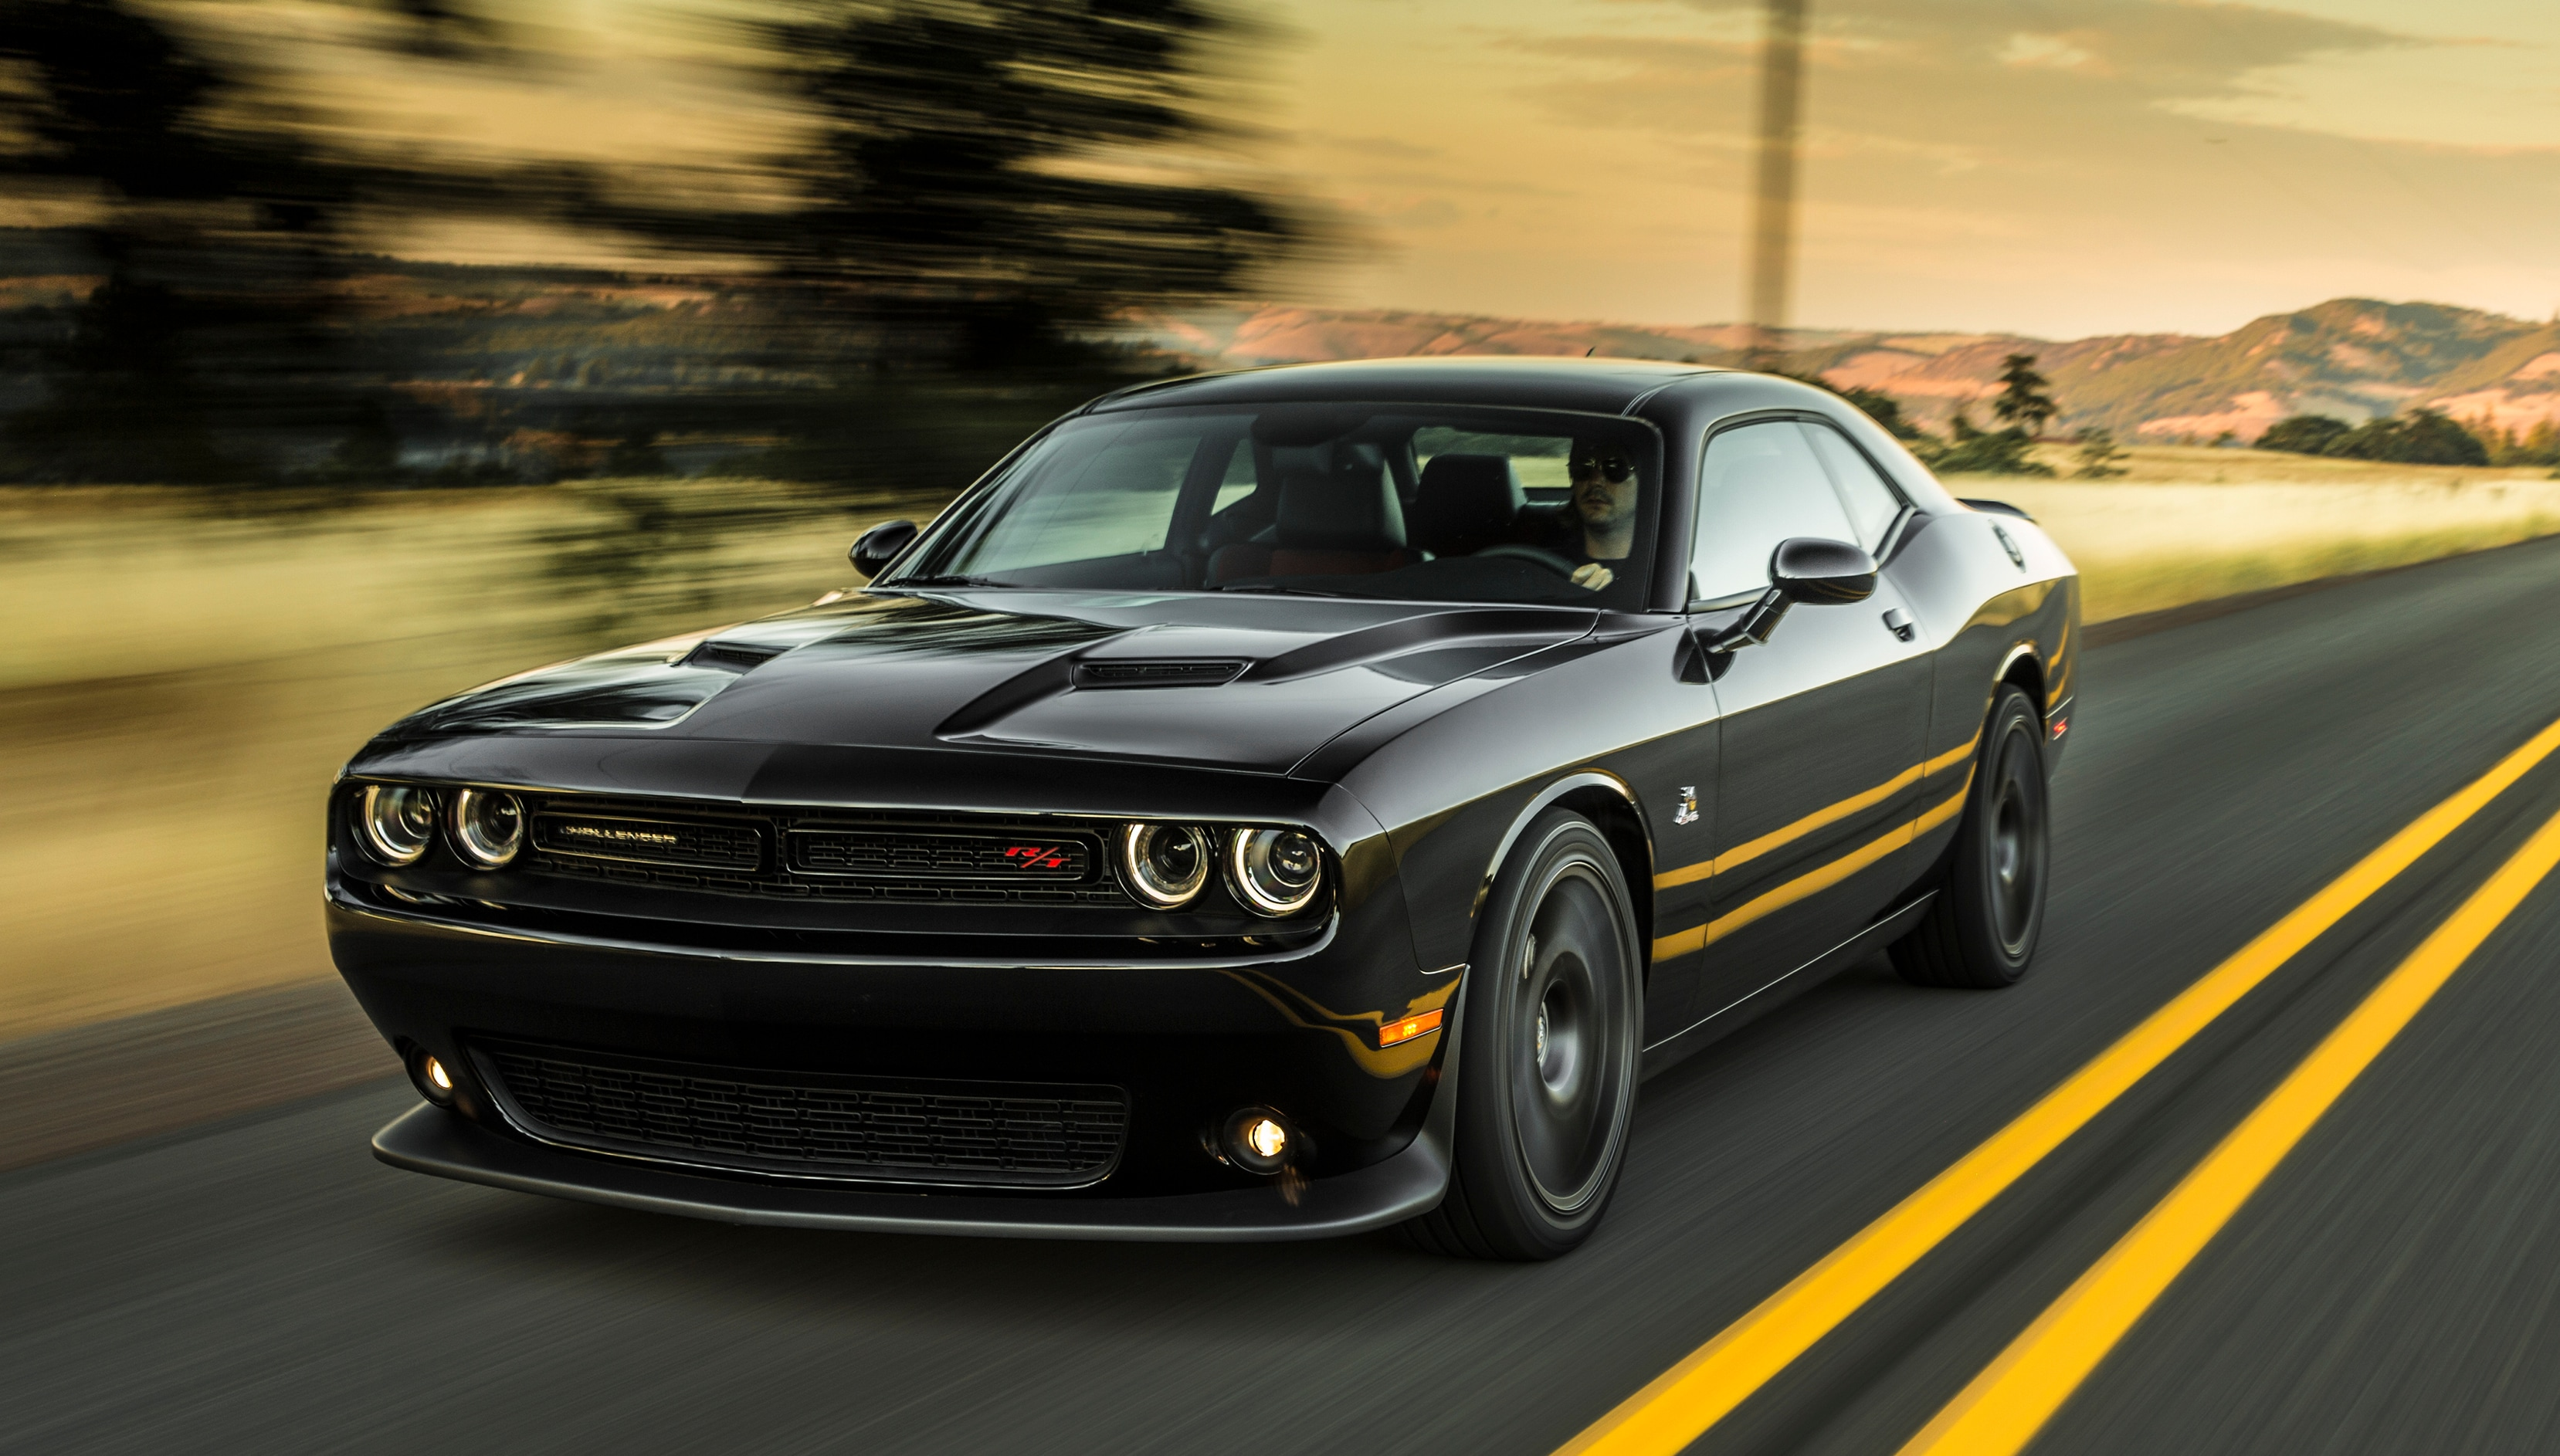 Charger Vs Challenger >> Compare The Dodge Challenger Vs Dodge Charger 1 Jeff D Ambrosio